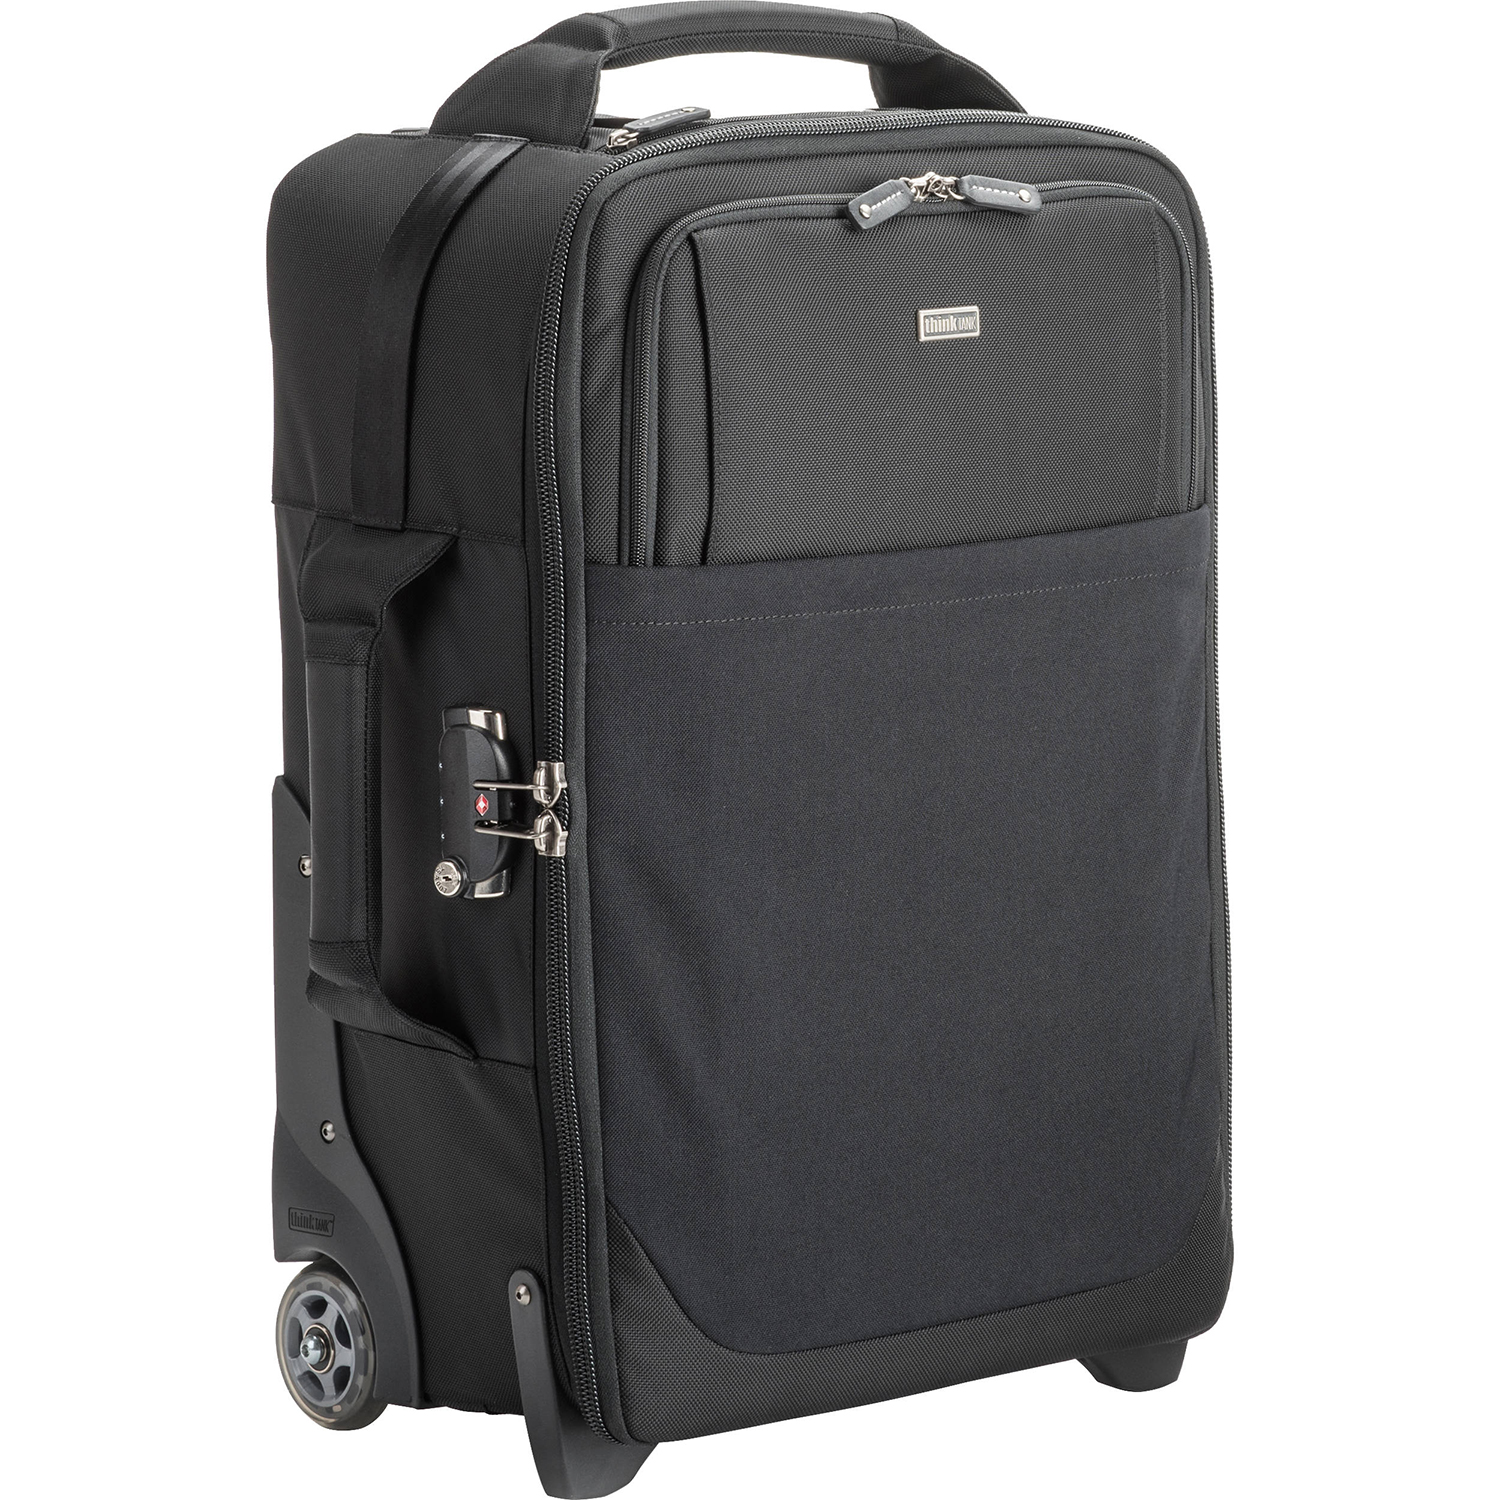 Photo of Think Tank Airport Security bag